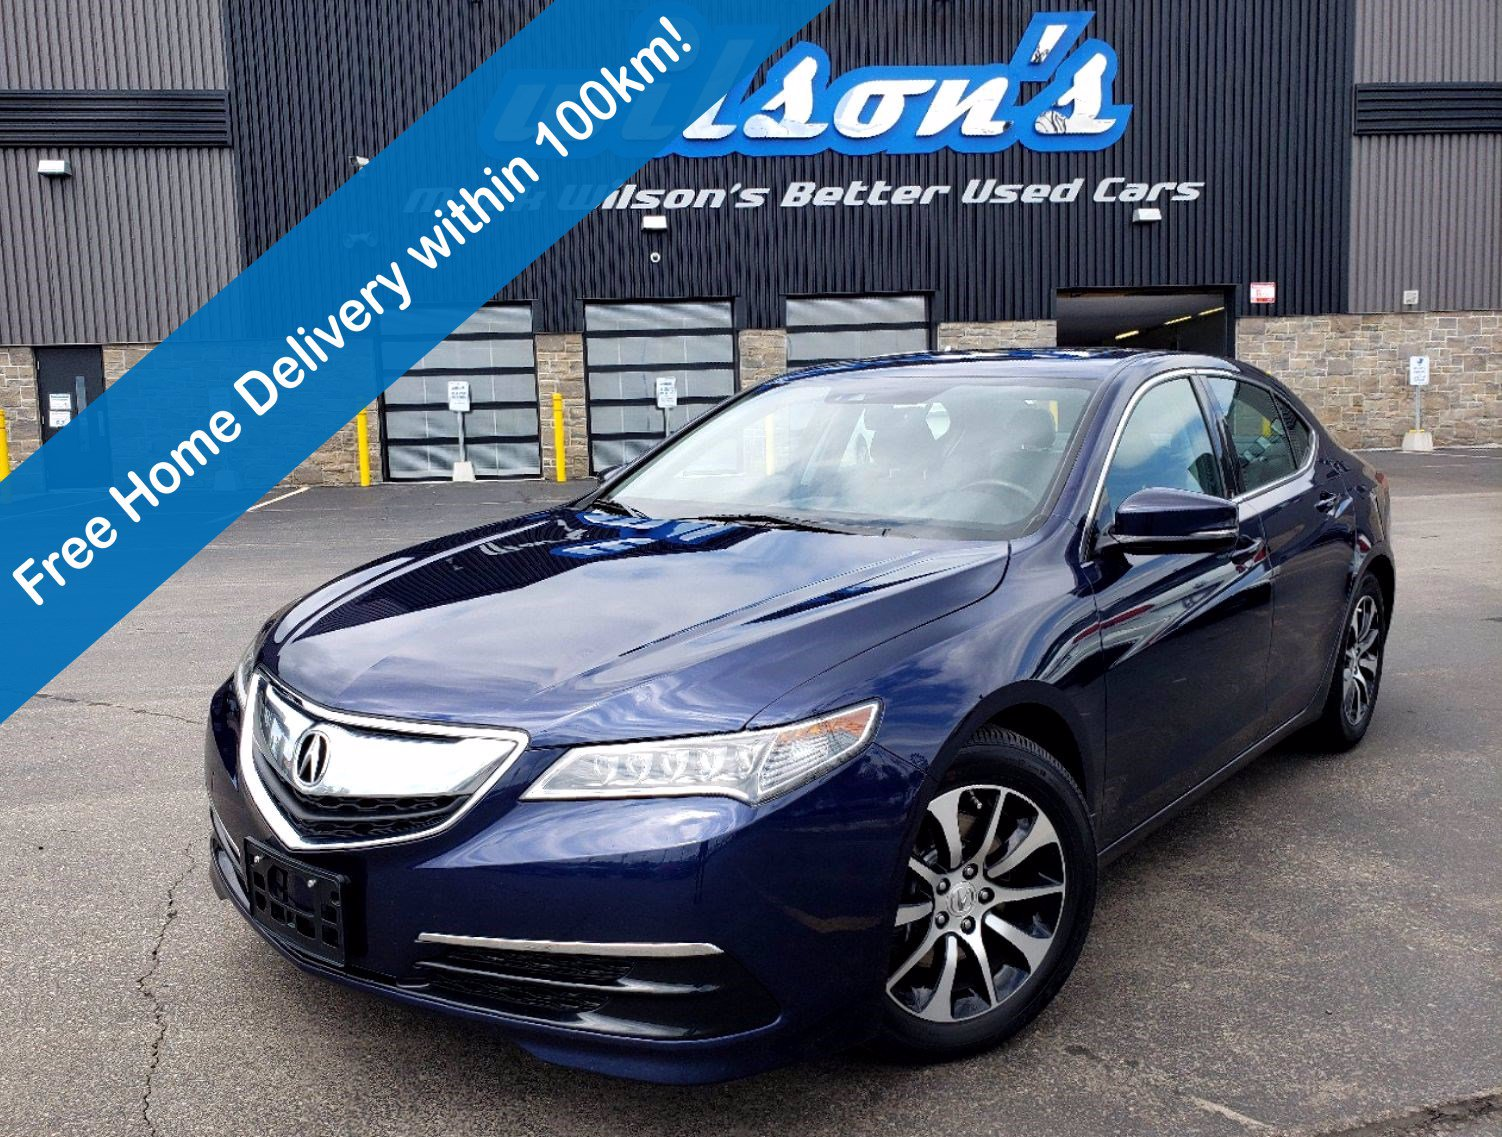 Certified Pre-Owned 2017 Acura TLX Tech, Leather, Sunroof, Navigation, Heated Seats, Rear Camera, Bluetooth, Alloys & More!